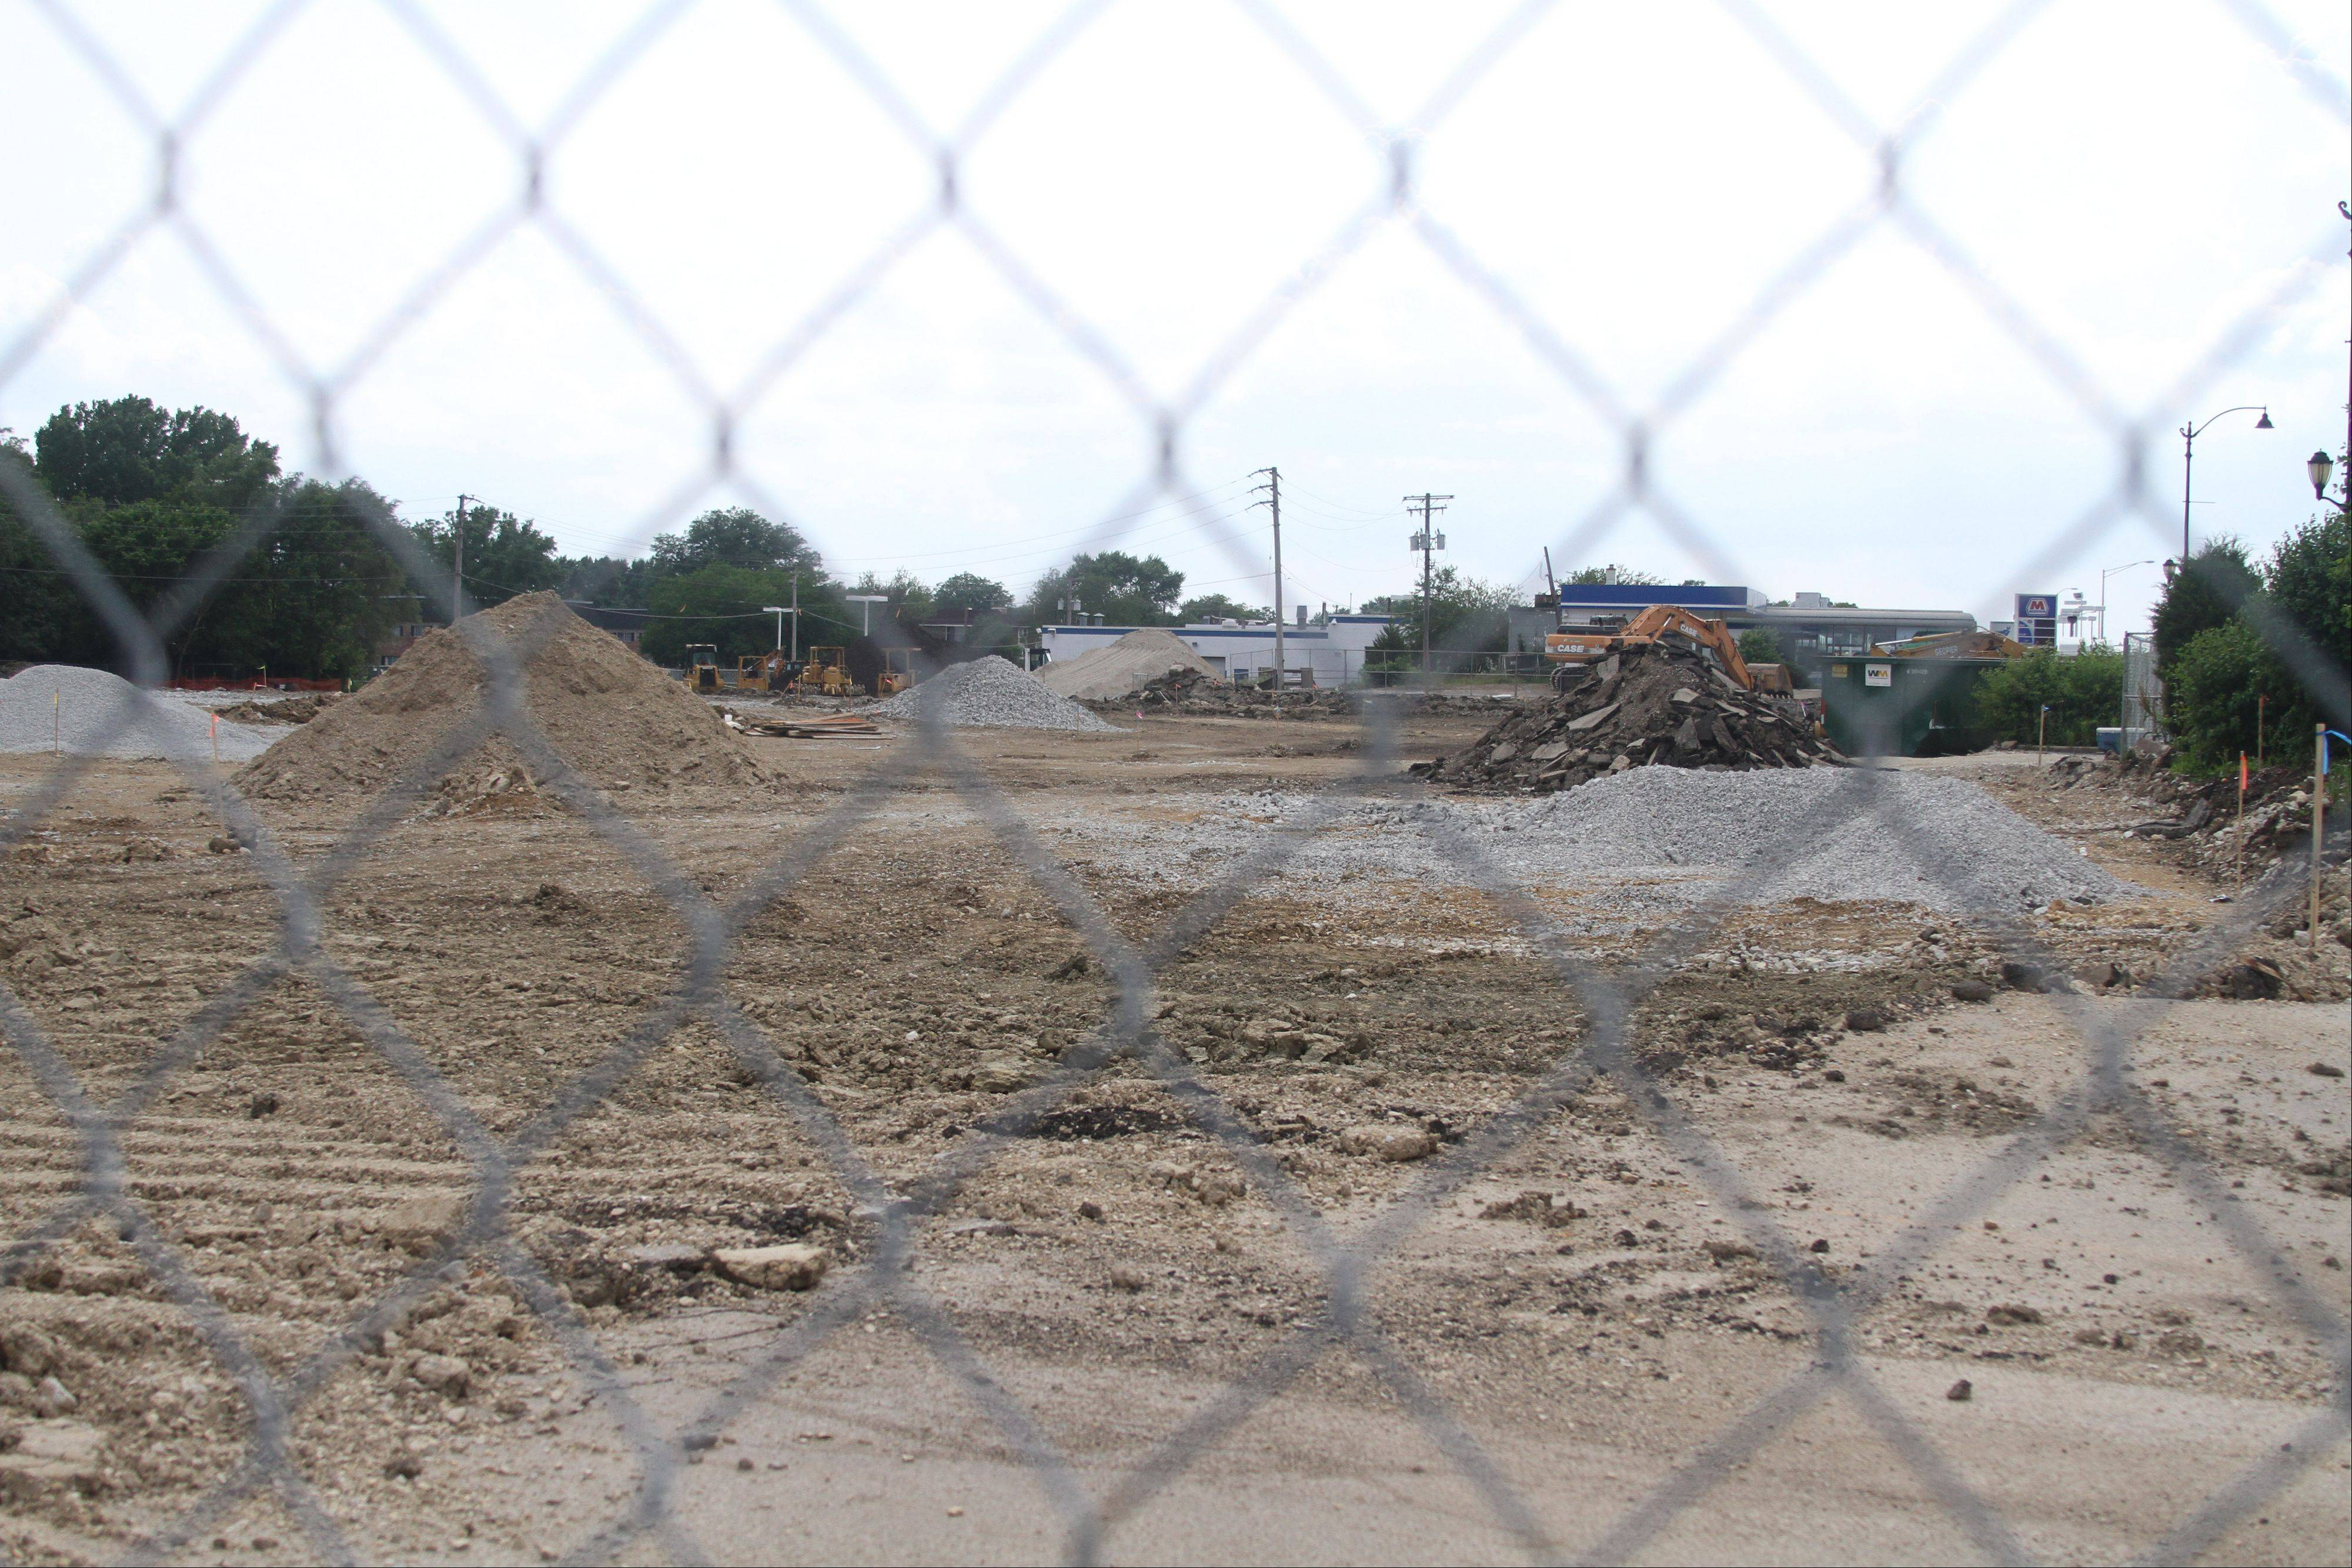 Environmental remediation work is taking place on the site of a new grocery store, The Fresh Market, at 285 Roosevelt Road in Glen Ellyn.